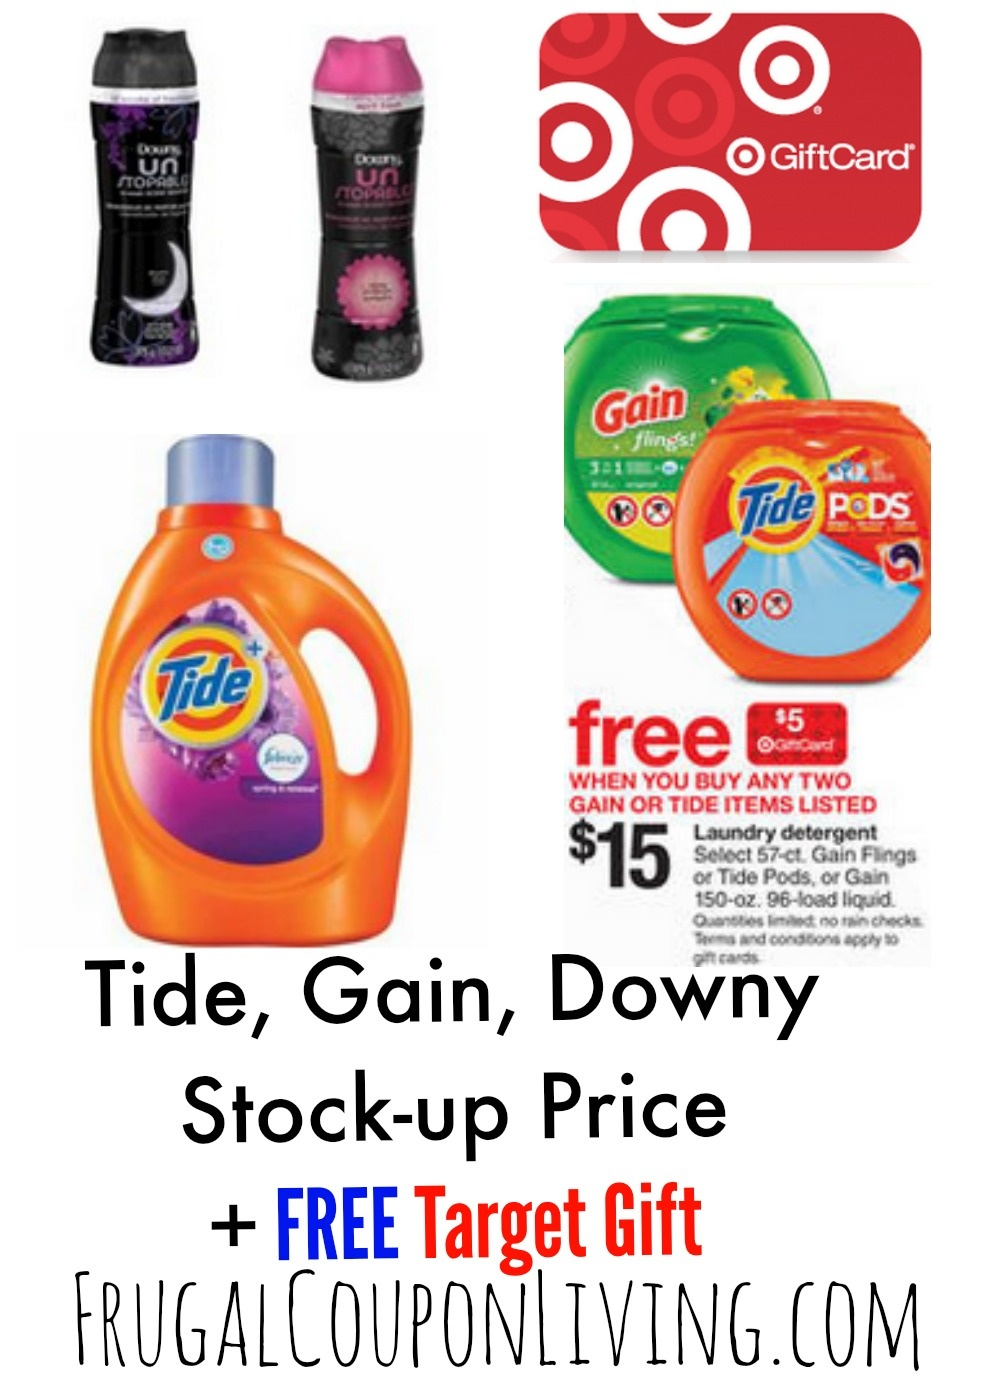 Target Laundry Detergent Deals Tide Downy Printable Laundry Miami Beach - Free Detergent Coupons Printable